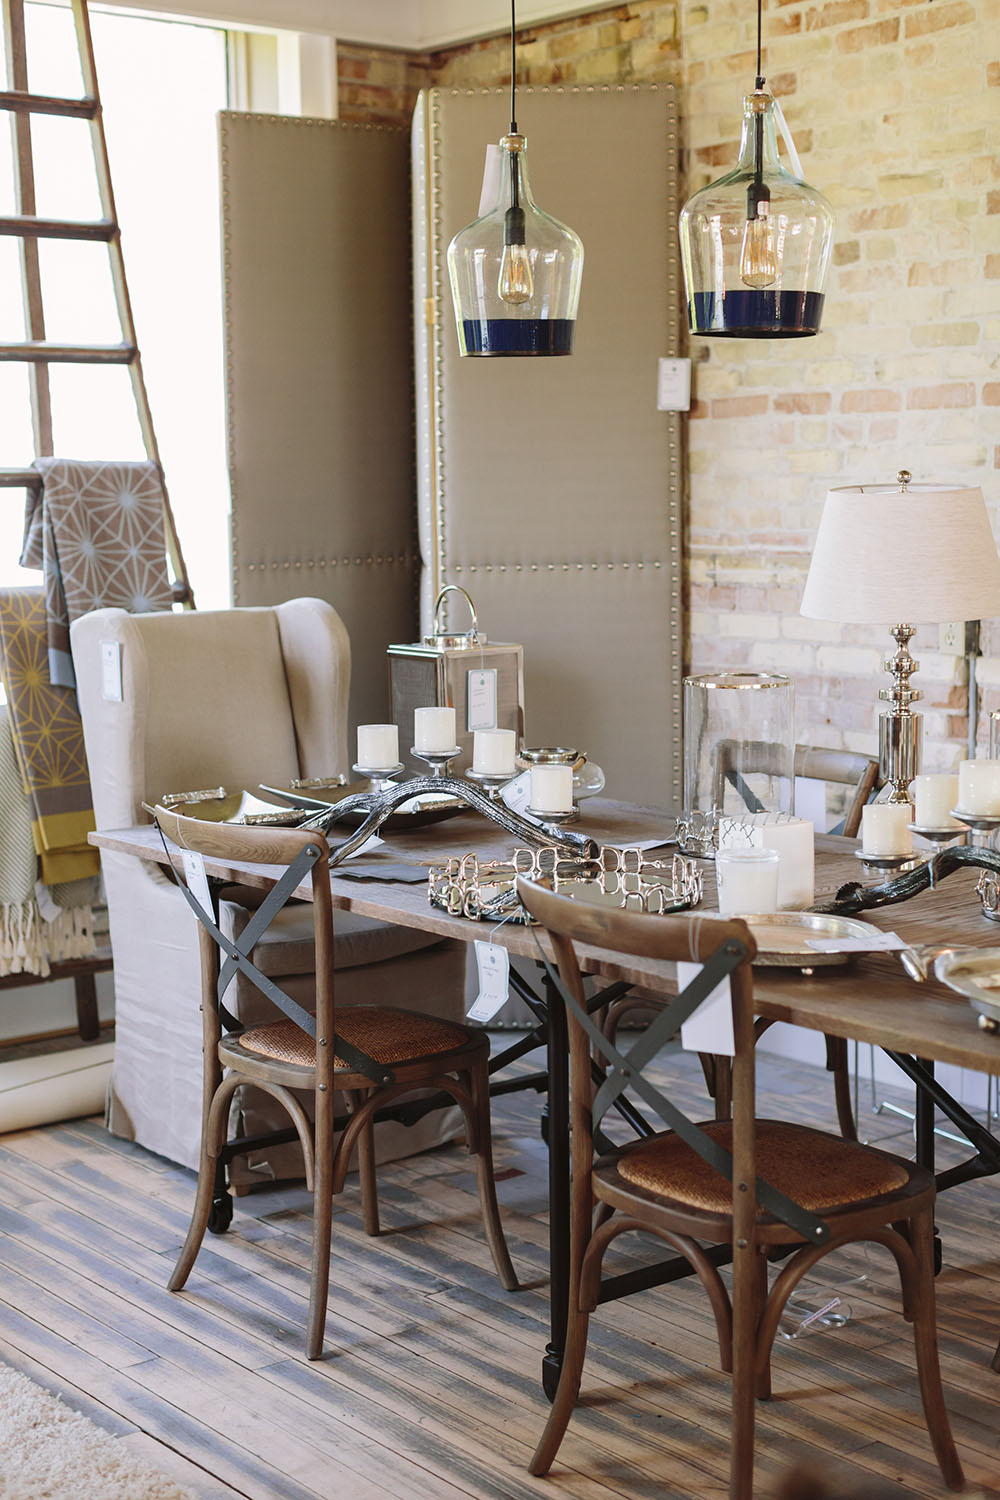 Find unique furniture at the Cedar Creek Interiors Showroom in Elk Rapids, MI